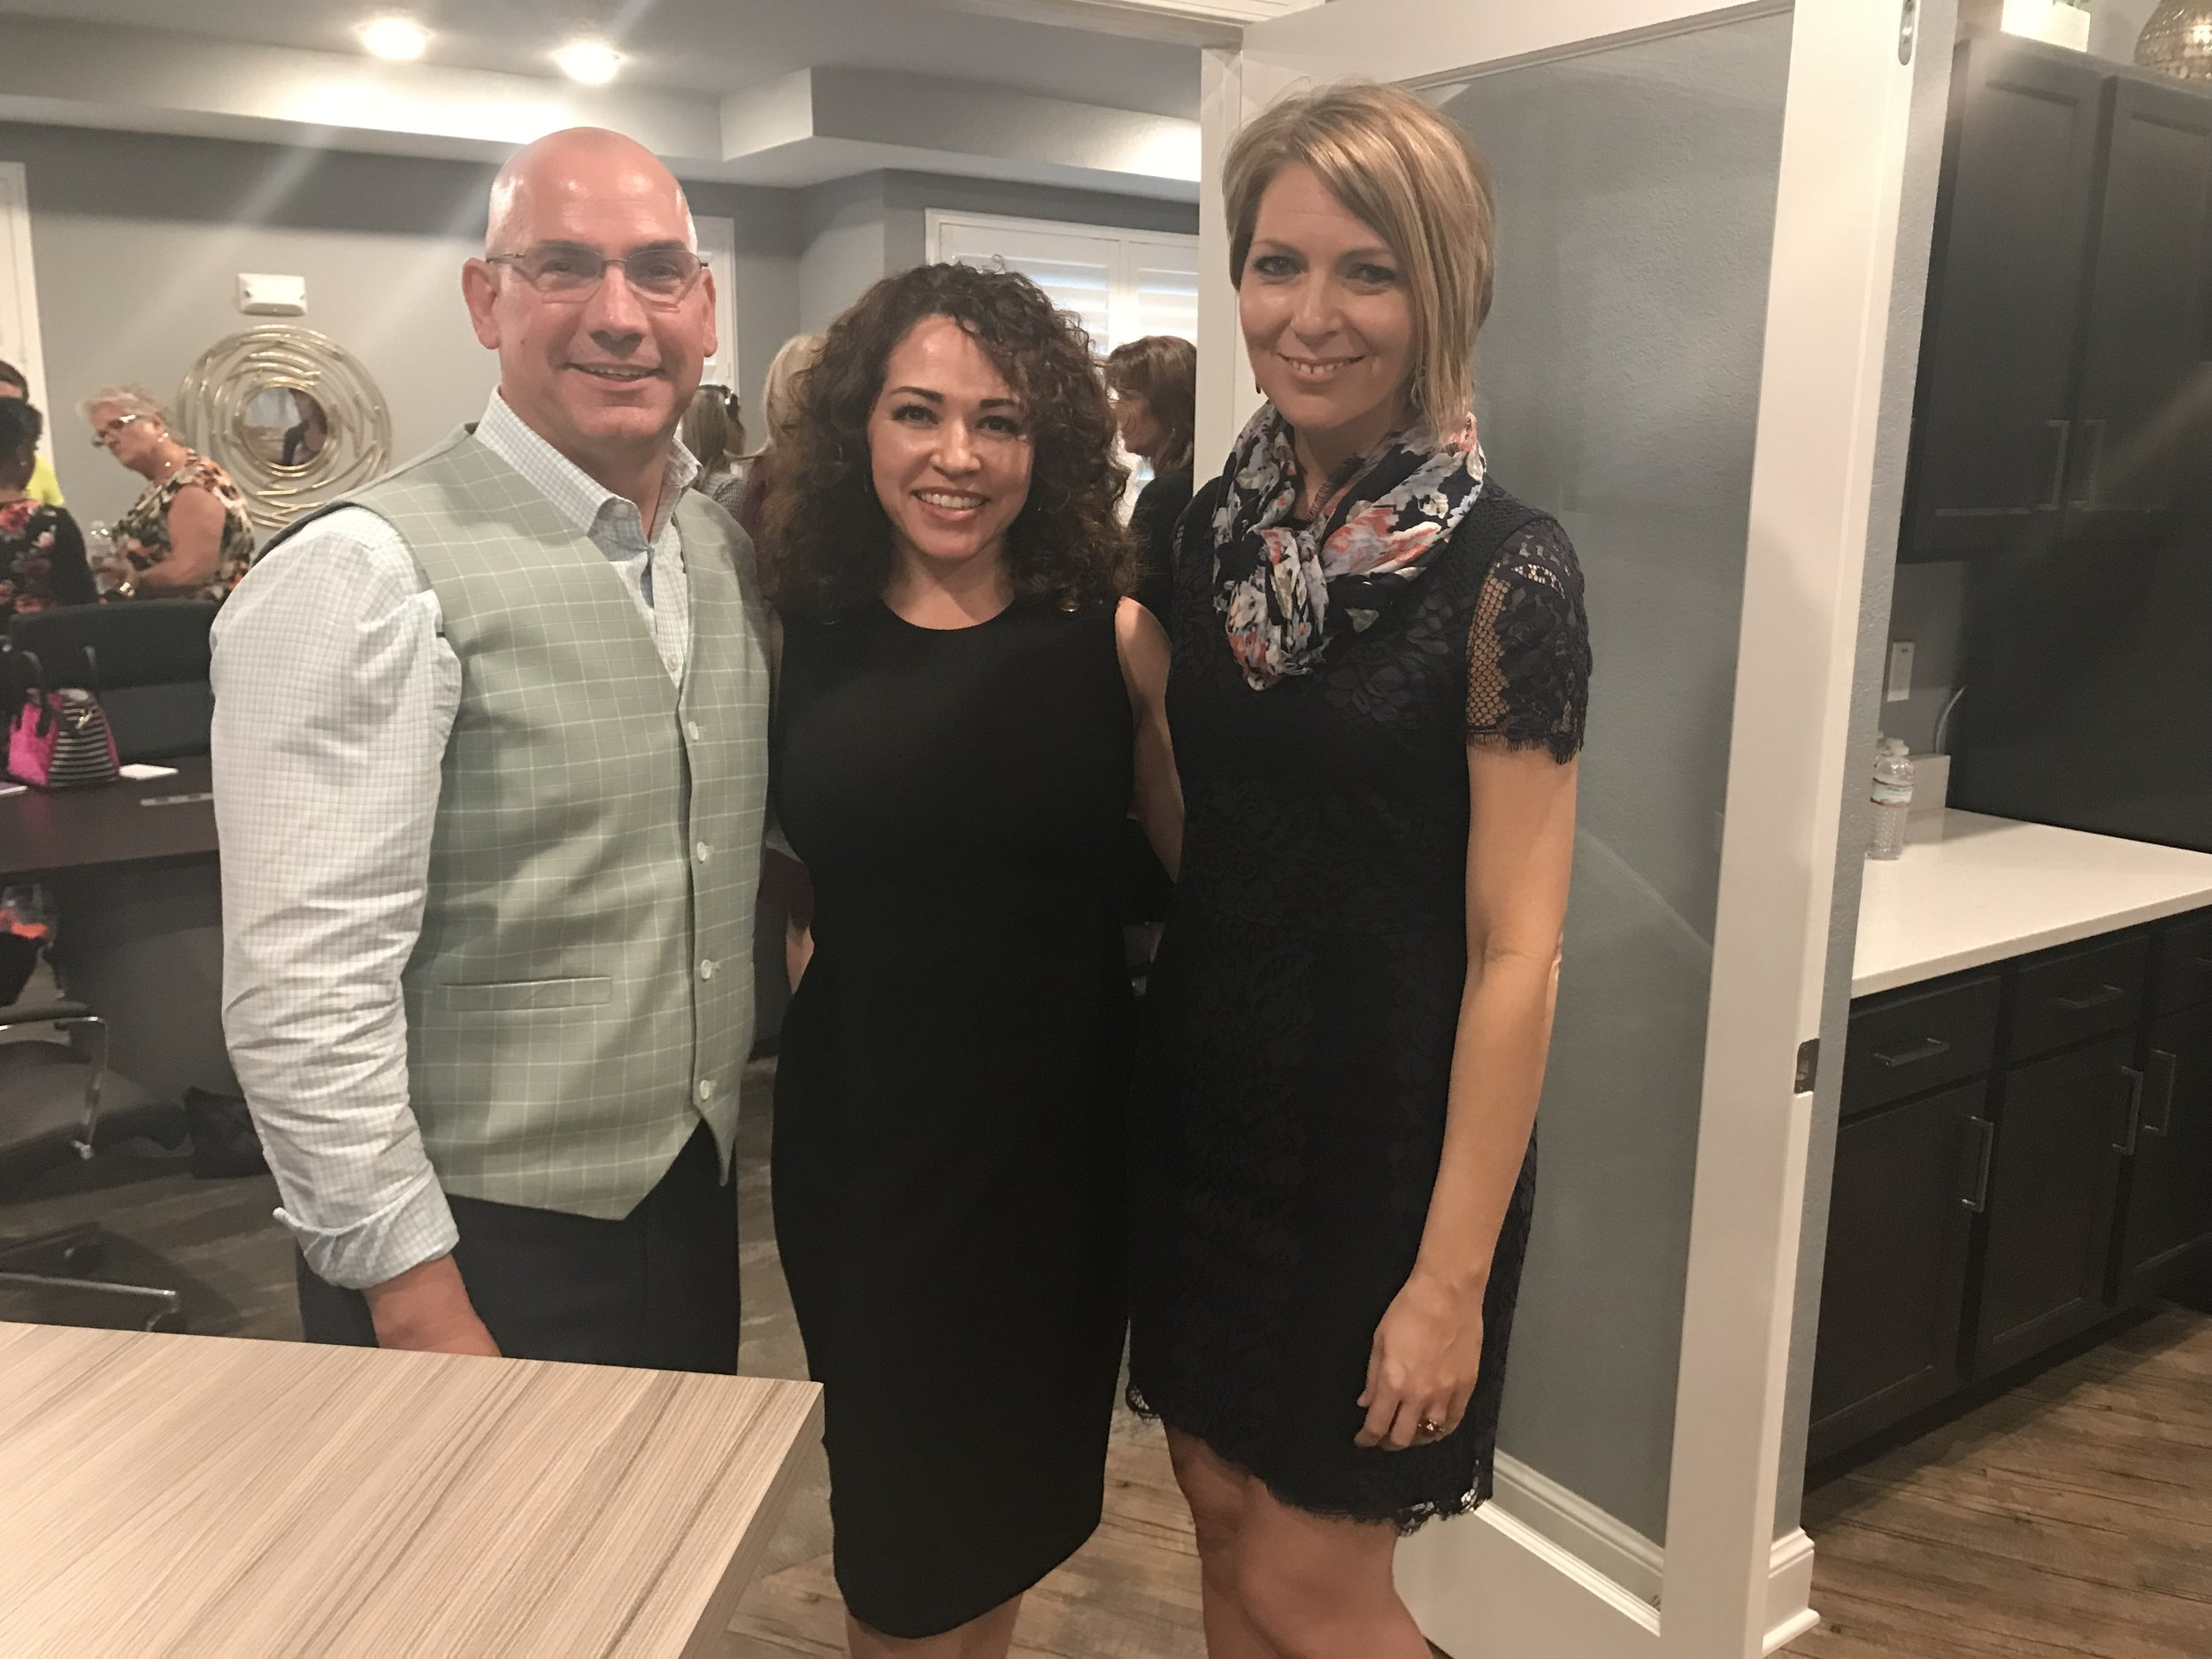 Ed Castner, Marcella Espinosa and Erica Castner at EPIC Game Plan event in Tampa on February 21, 2018.